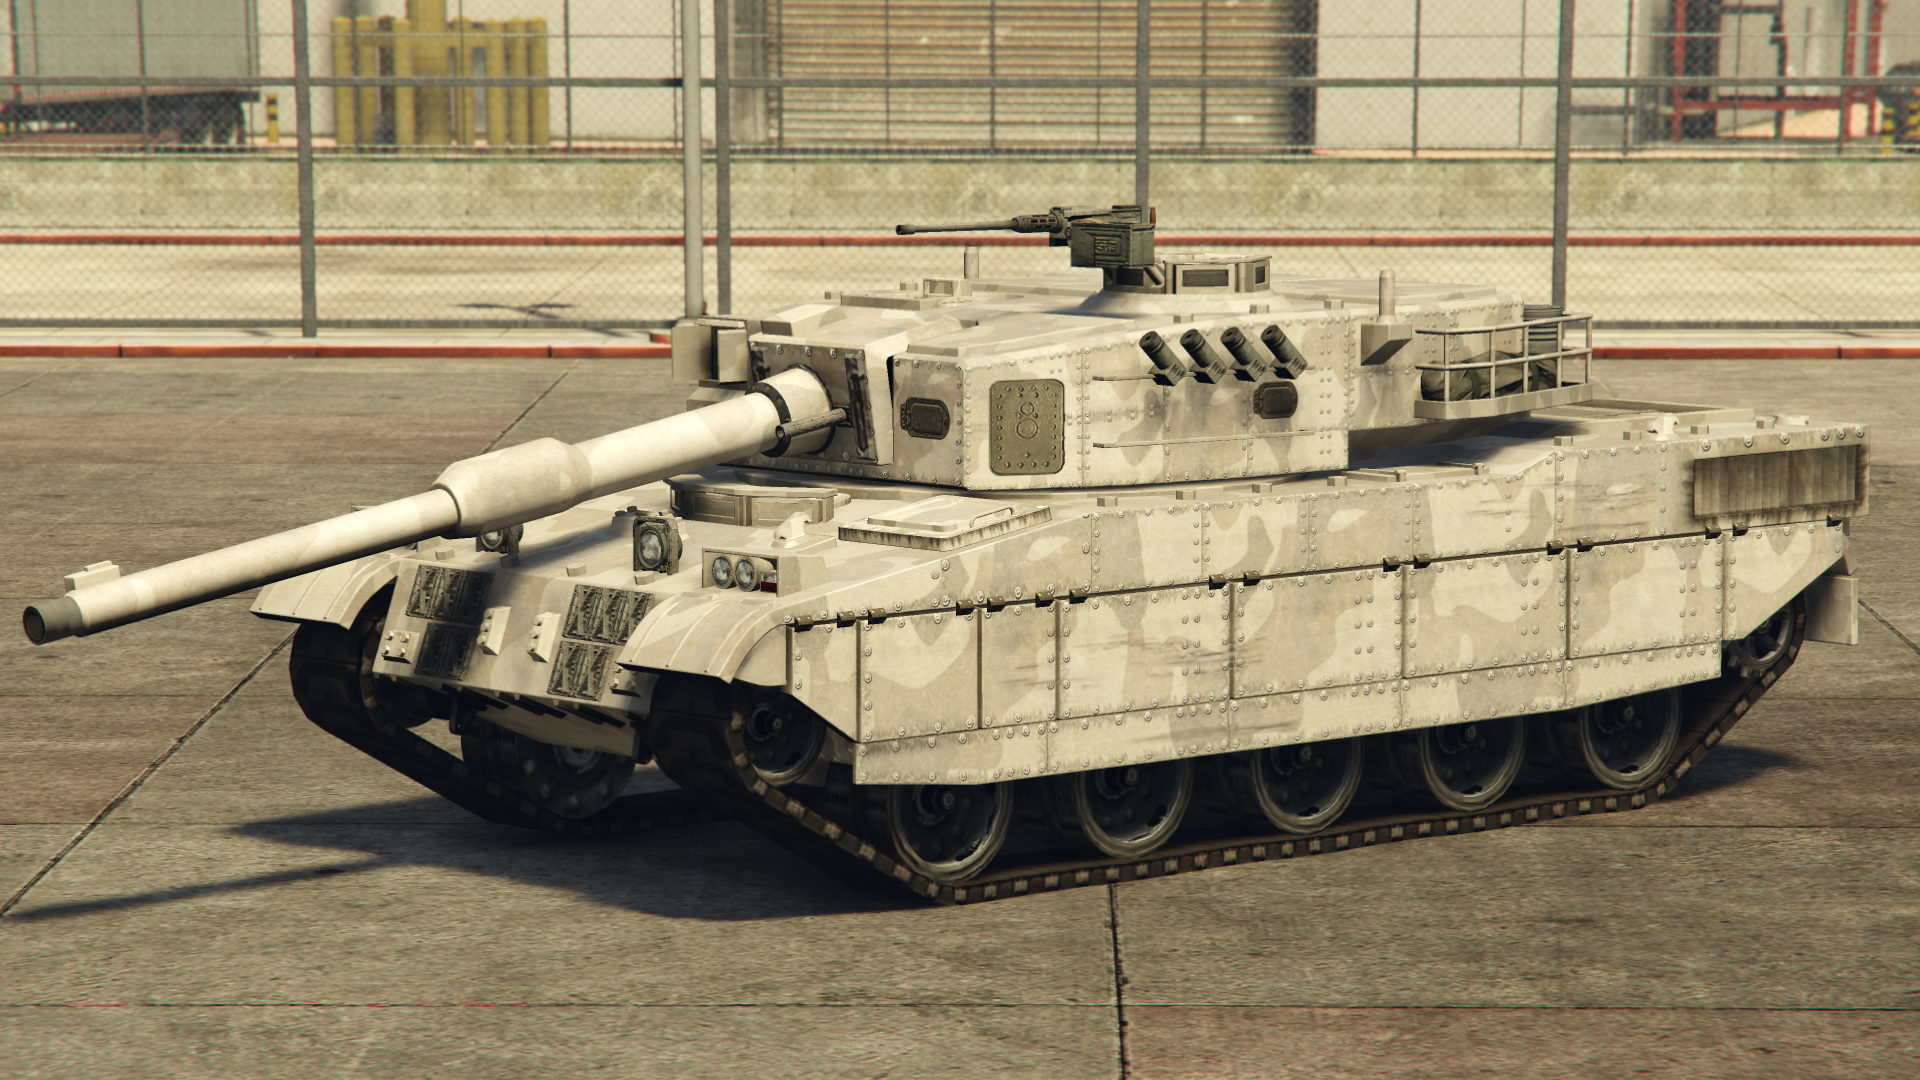 Rhino Tank | GTA Wiki | FANDOM powered by Wikia